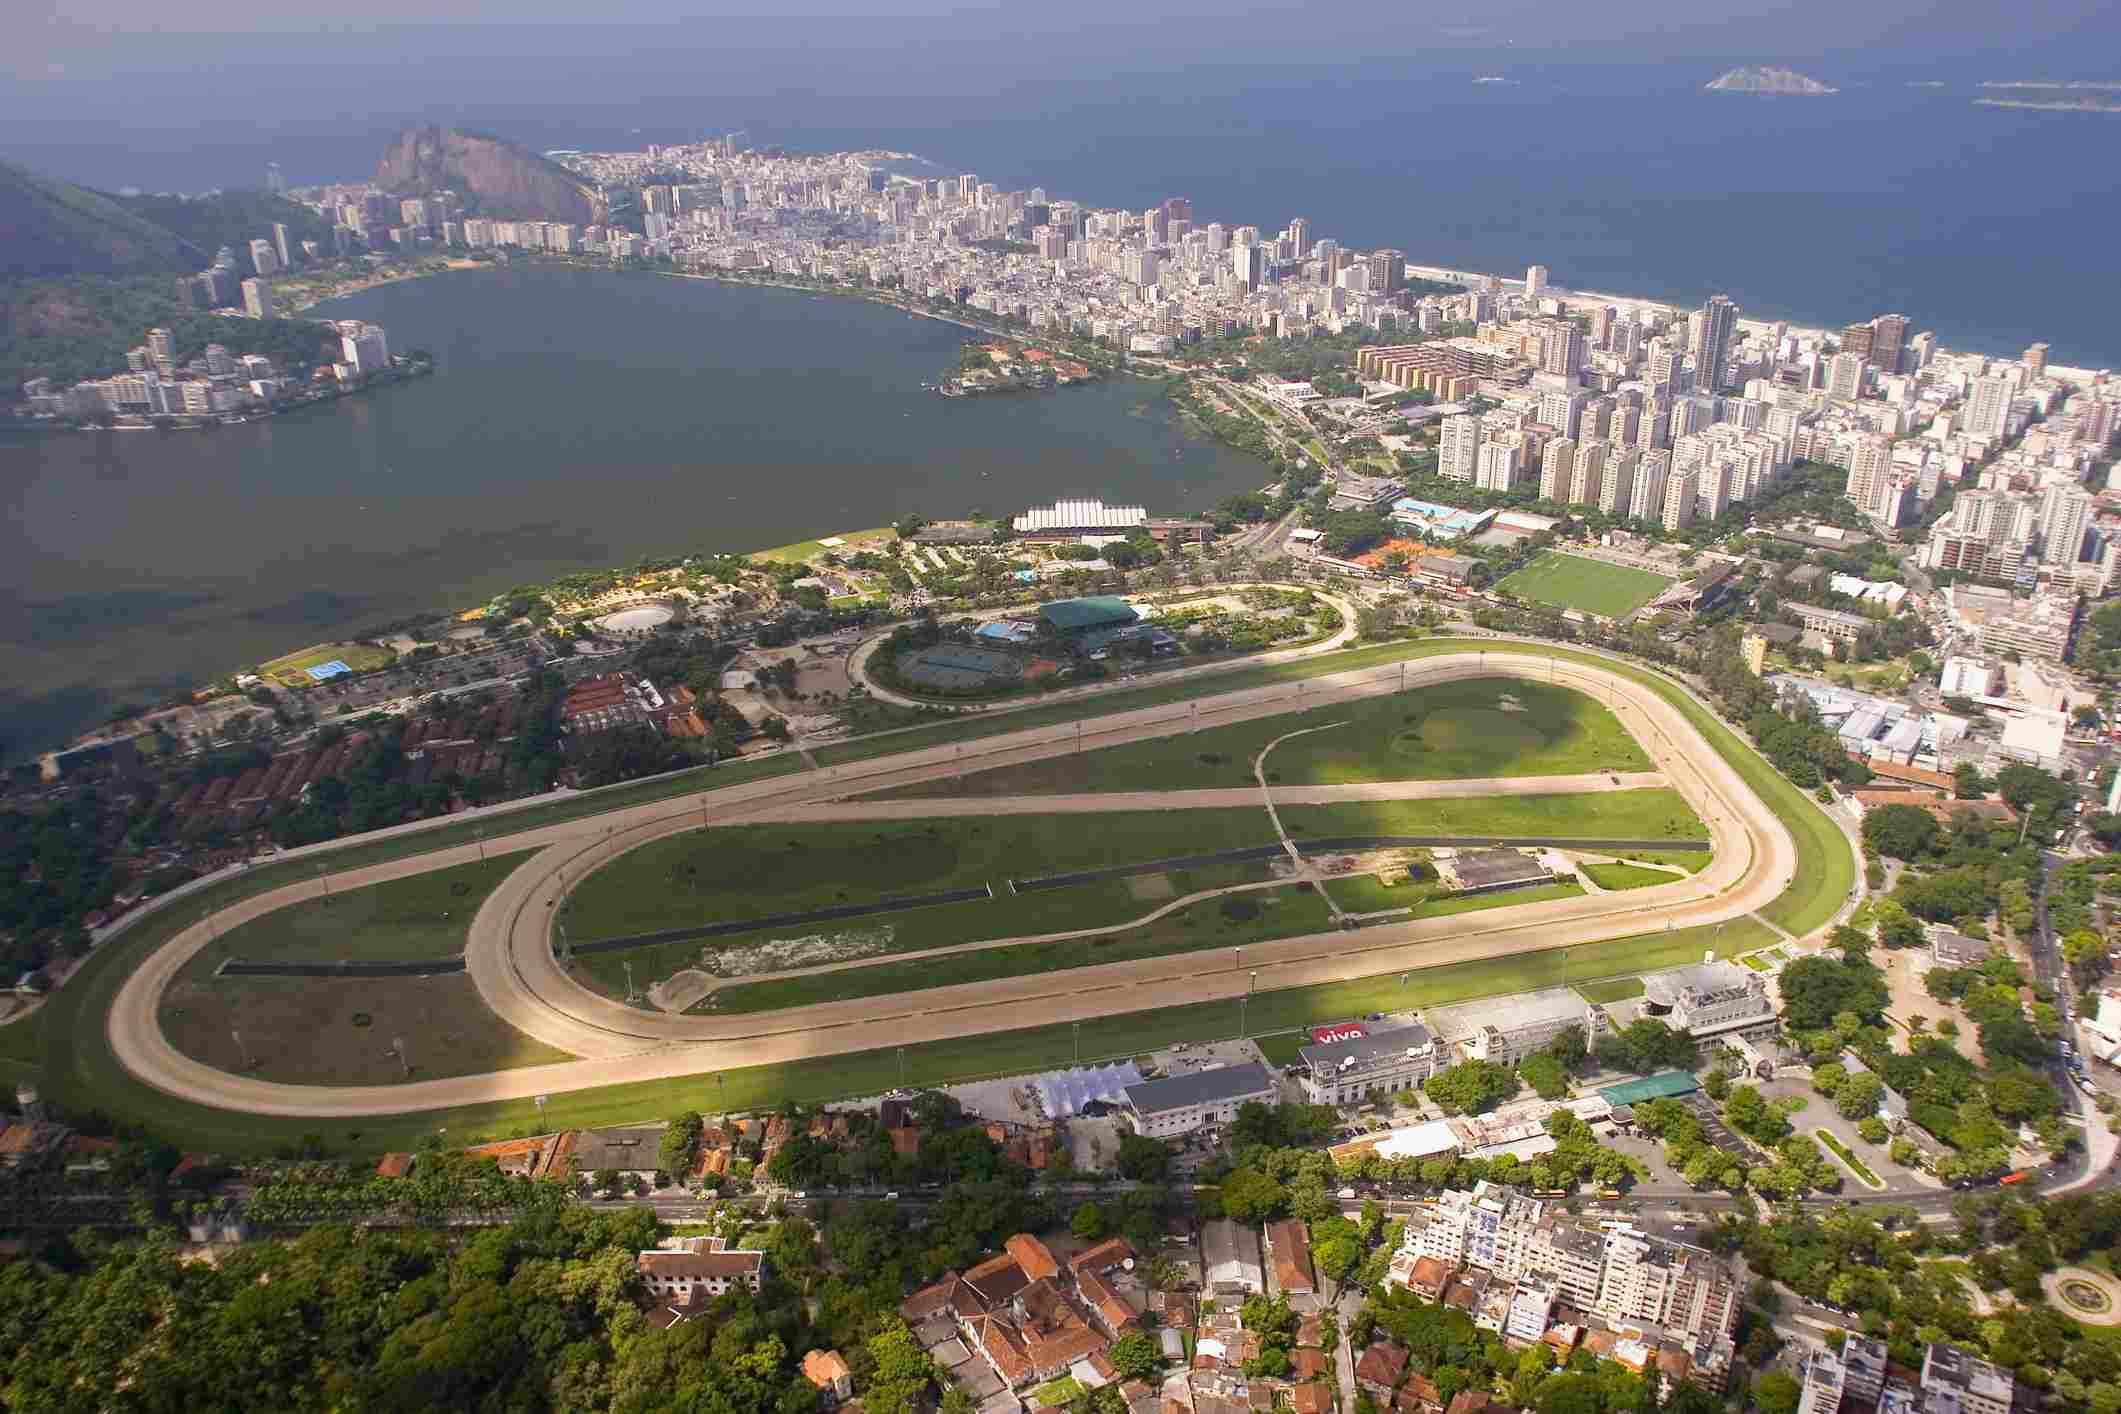 aerial view of the jockey club track in rio